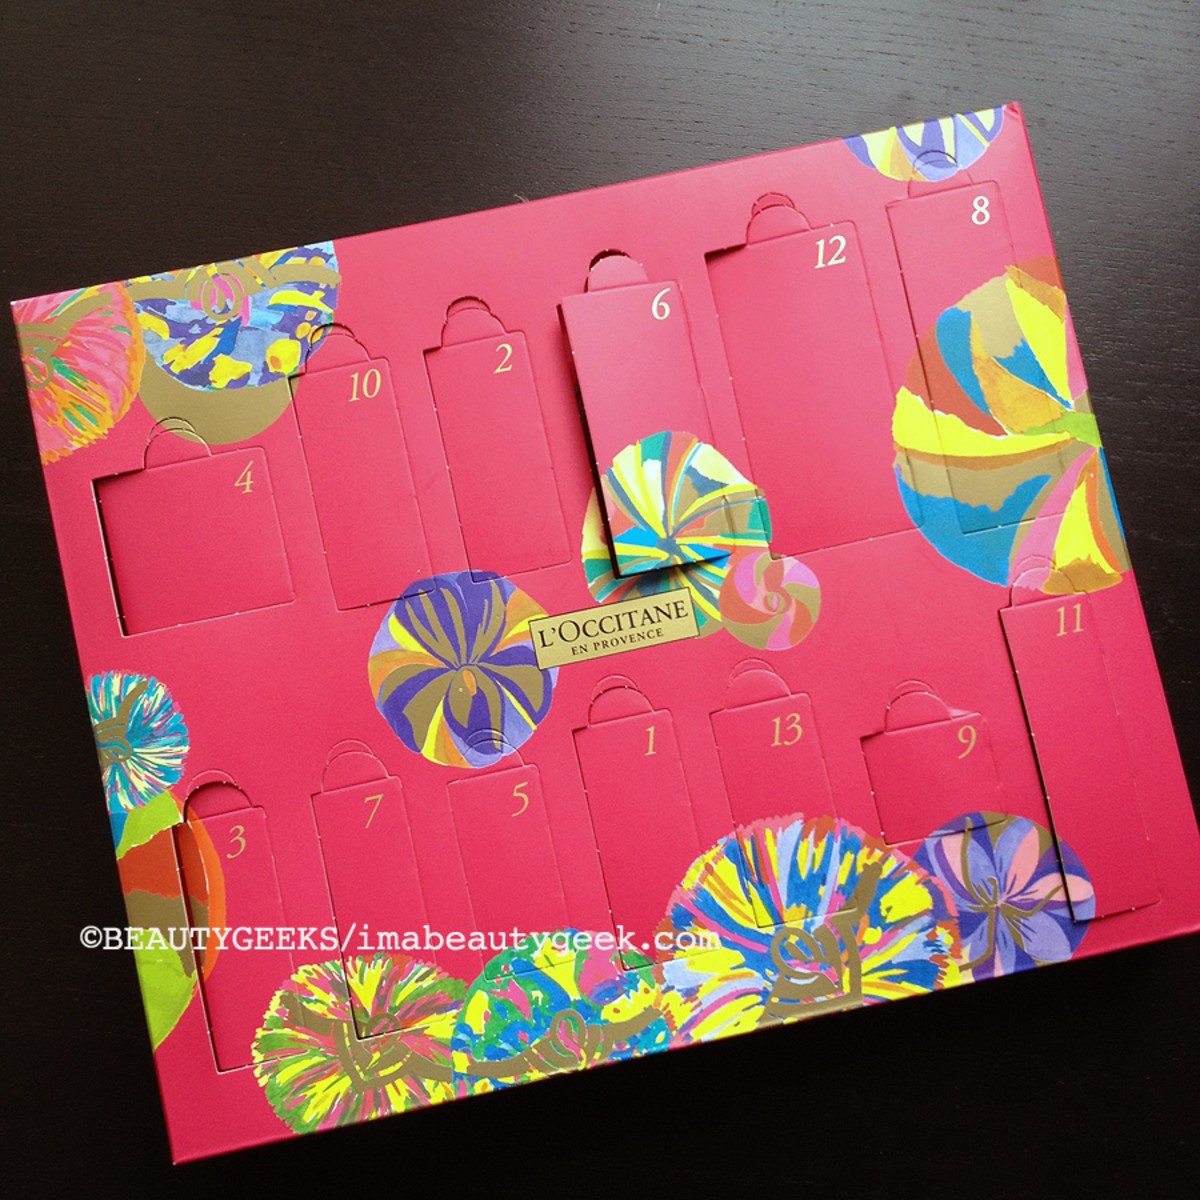 advent calendars 2014_L'Occitane 13 desserts of Provence_psuedo advent calendar front